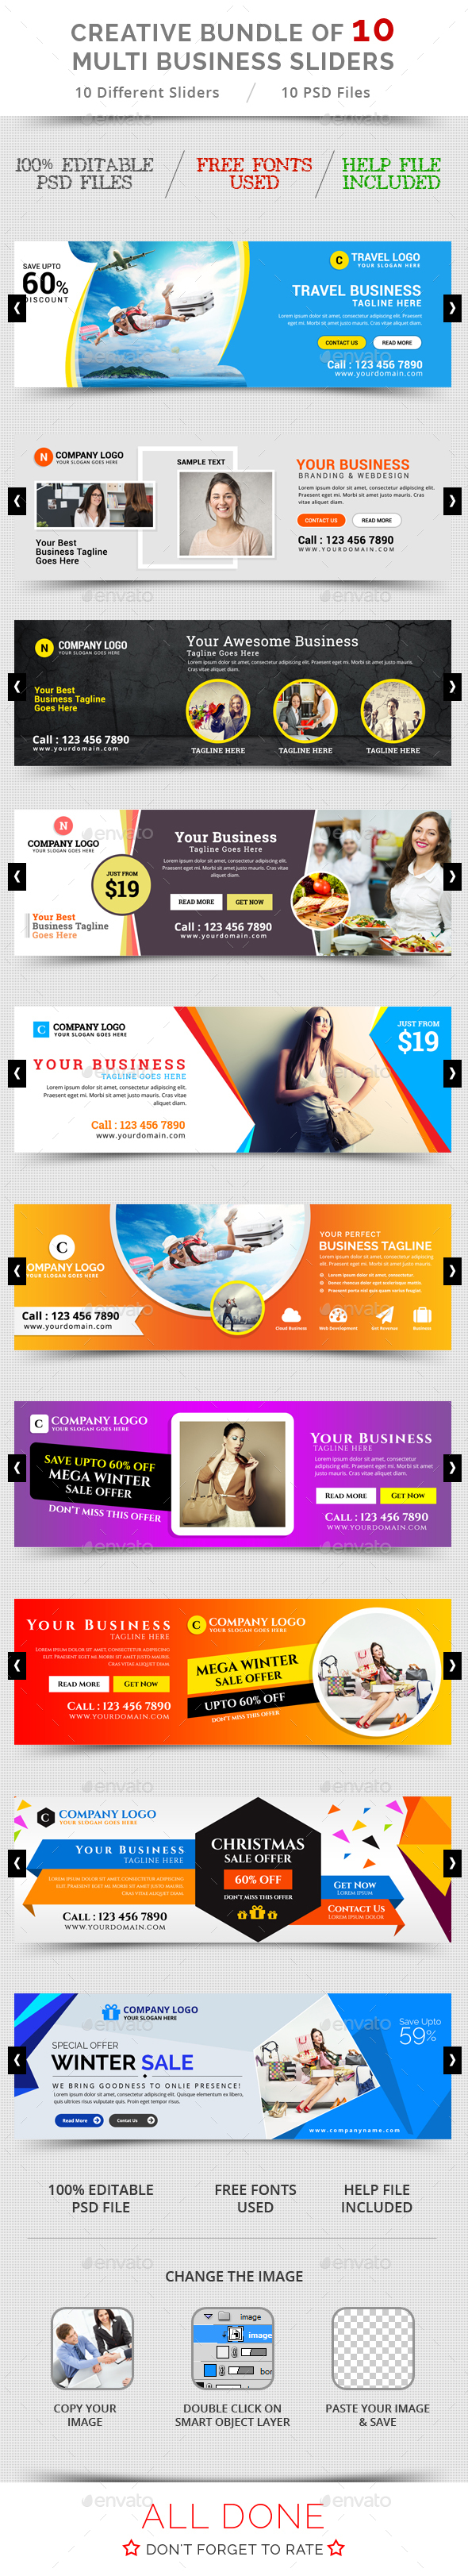 Bundle Of 10 Creative Business Sliders - Sliders & Features Web Elements